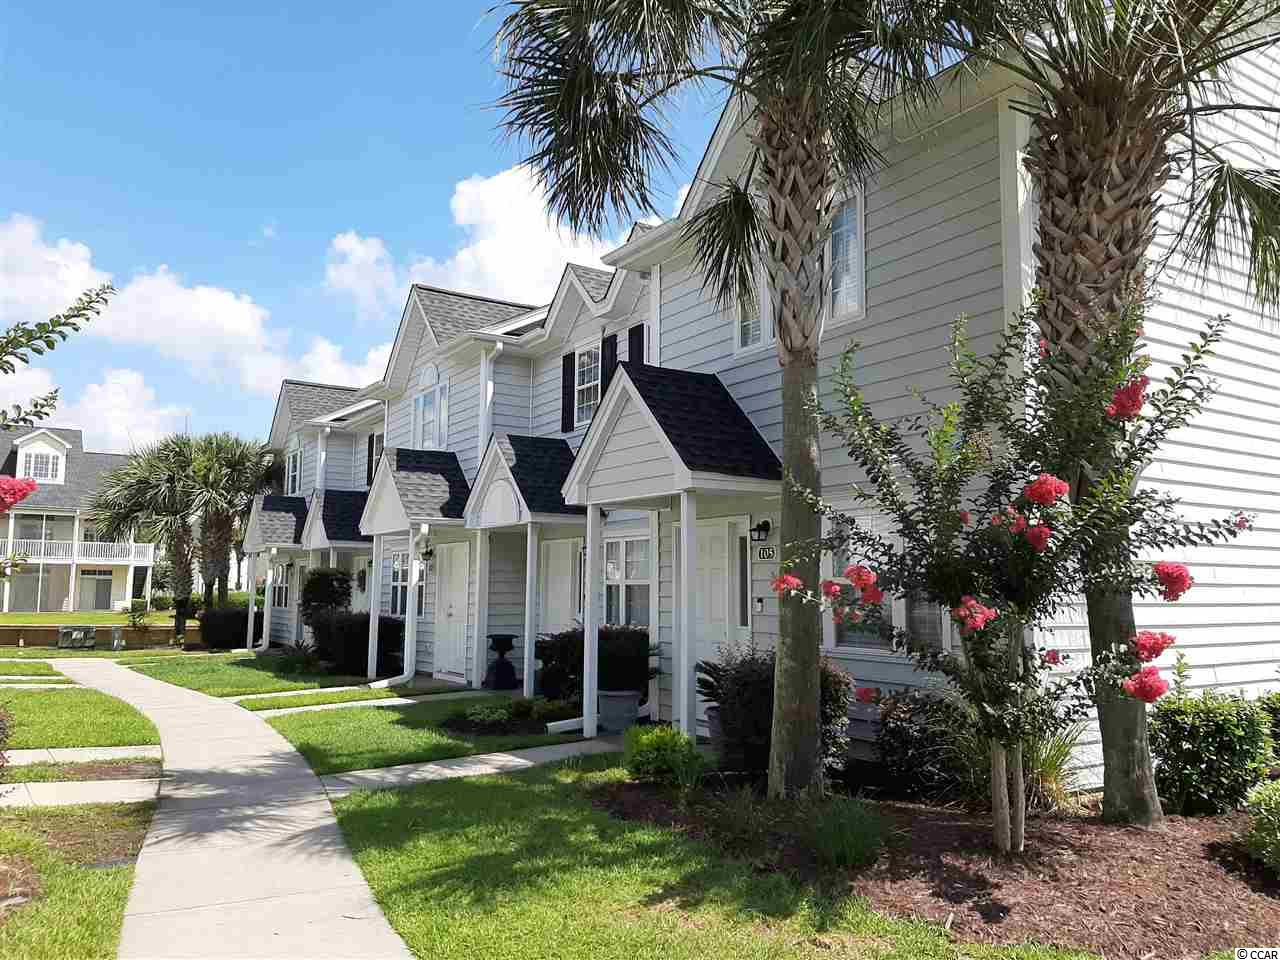 Welcome to Villas @ International Club in Murrells Inlet. A gated resort like community perfect for full time residency or a second home /golf retreat. This 2BR/2.5Ba townhome was recently renovated with New Paint and Carpets throughout. All New Stainless Steel Appliances and New Granite Counter tops in kitchen and bathrooms.  The first floor offers a spacious living room area, dining, kitchen, half bath and a walk in storage area beneath the staircase. Upstairs are 2 bedrooms, each with private baths and walk in closets. The Laundry is also located upstairs adjacent to the bedrooms. Just off the kitchen is a patio area that includes an attached outdoor storage closet and PVC privacy fencing. Villas at the International Club borders the International Club Golf Course, is gated and has a private pool area for residents and guest. The community is conveniently located close to the Murrells Inlet Marsh Walk, Huntington Beach State Park and Brookgreen Gardens. Don't miss it !! Call today with any questions or to schedule a time to view this exceptional home.